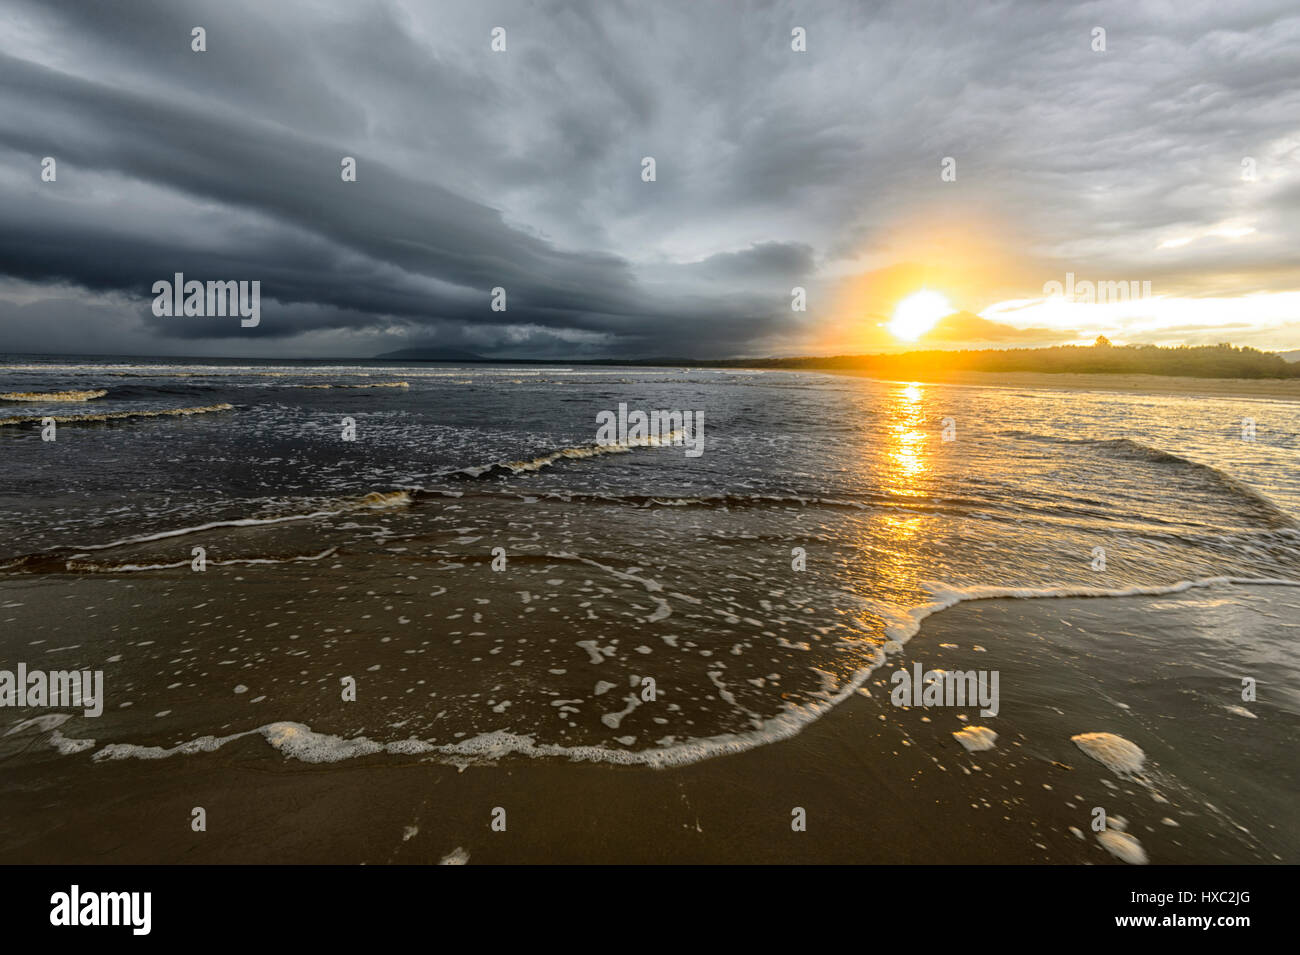 Sunset and stormy weather at Seven Mile Beach, Gerroa, Illawarra Coast, New South Wales, NSW, Australia - Stock Image